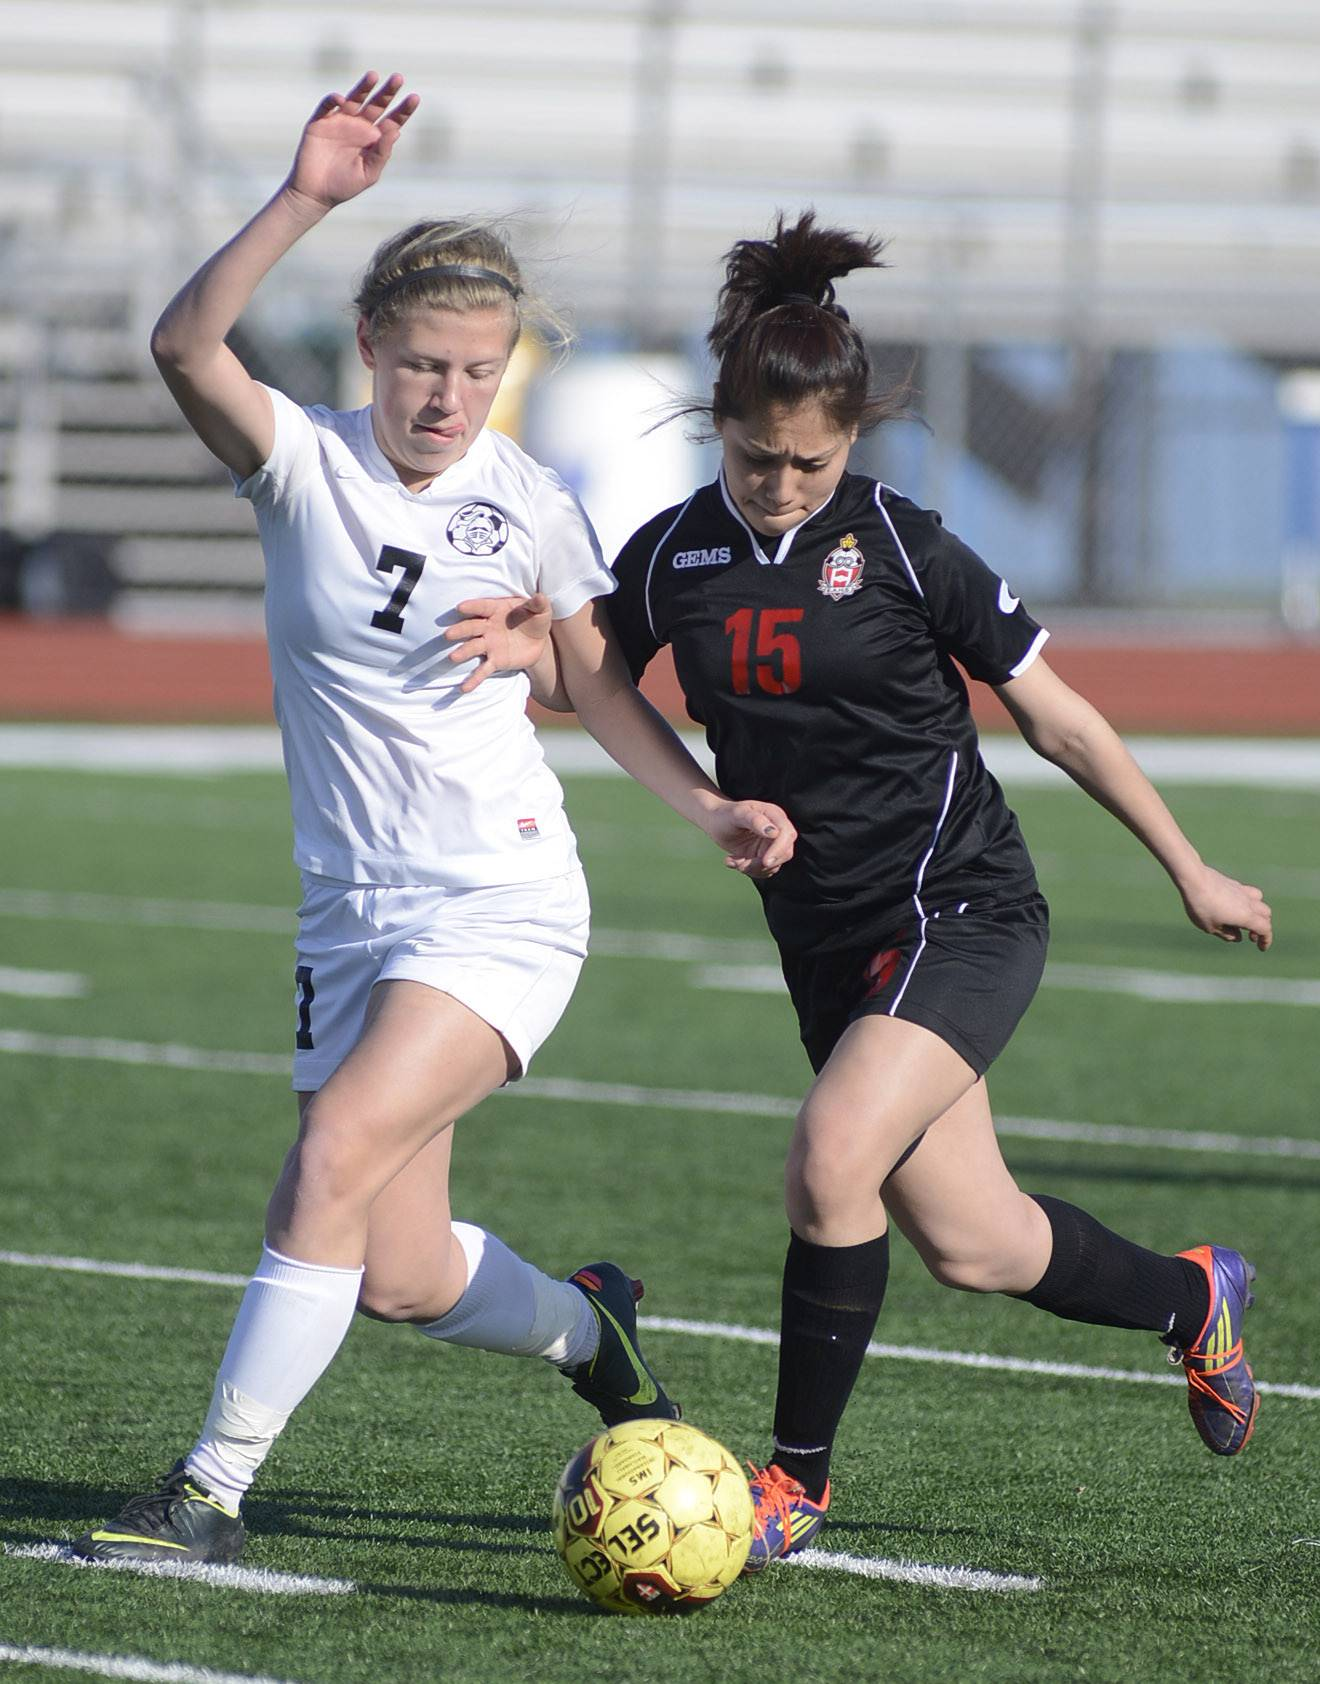 Kaneland's Heather Ortiz and East Aurora's Jacqueline Palestina battle for the ball in the first half on Wednesday, April 16.